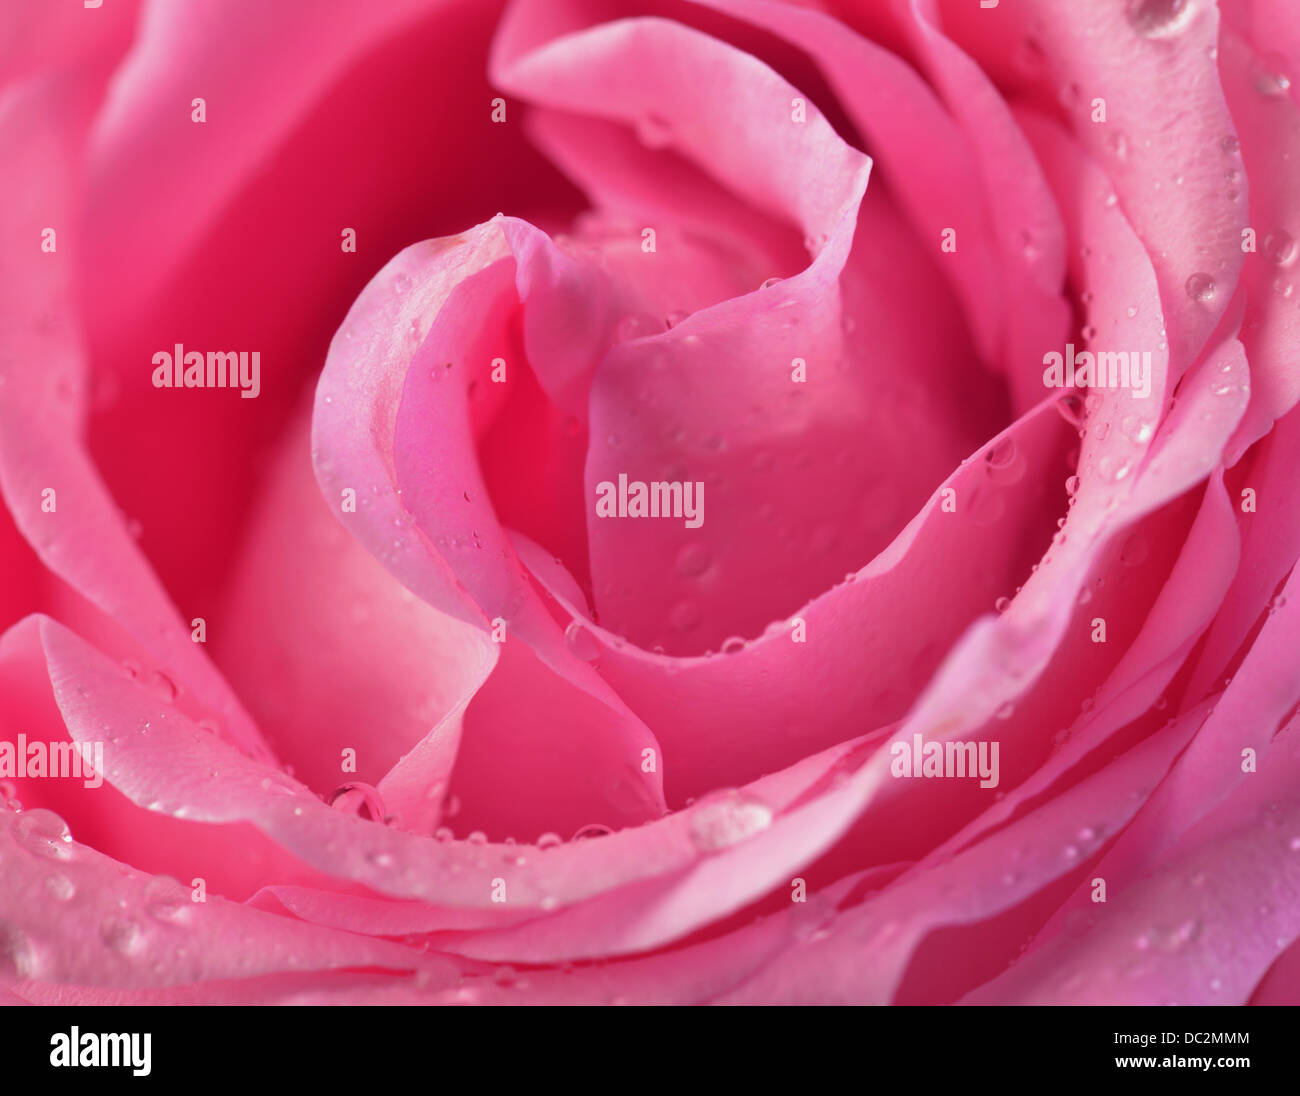 Pink rose bud macro with water drops - Stock Image